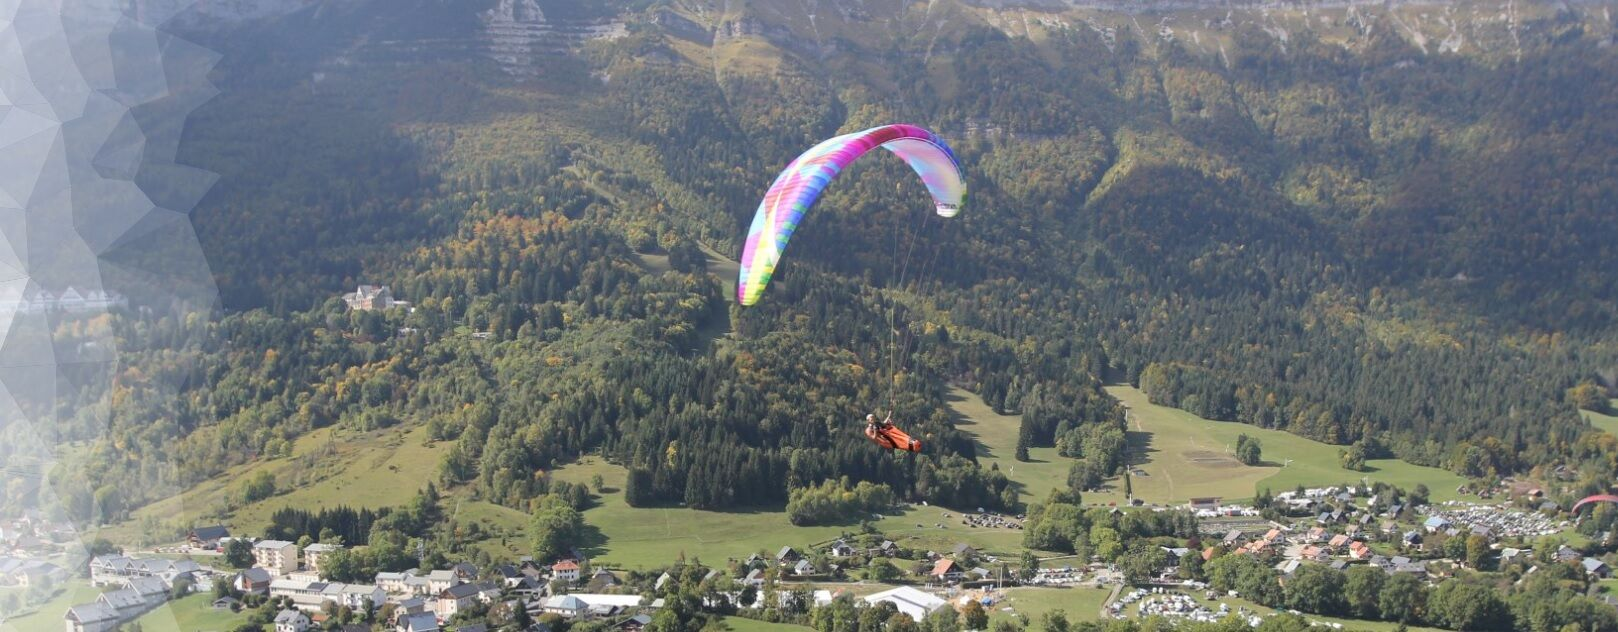 Paragliding tuition at it best with the best